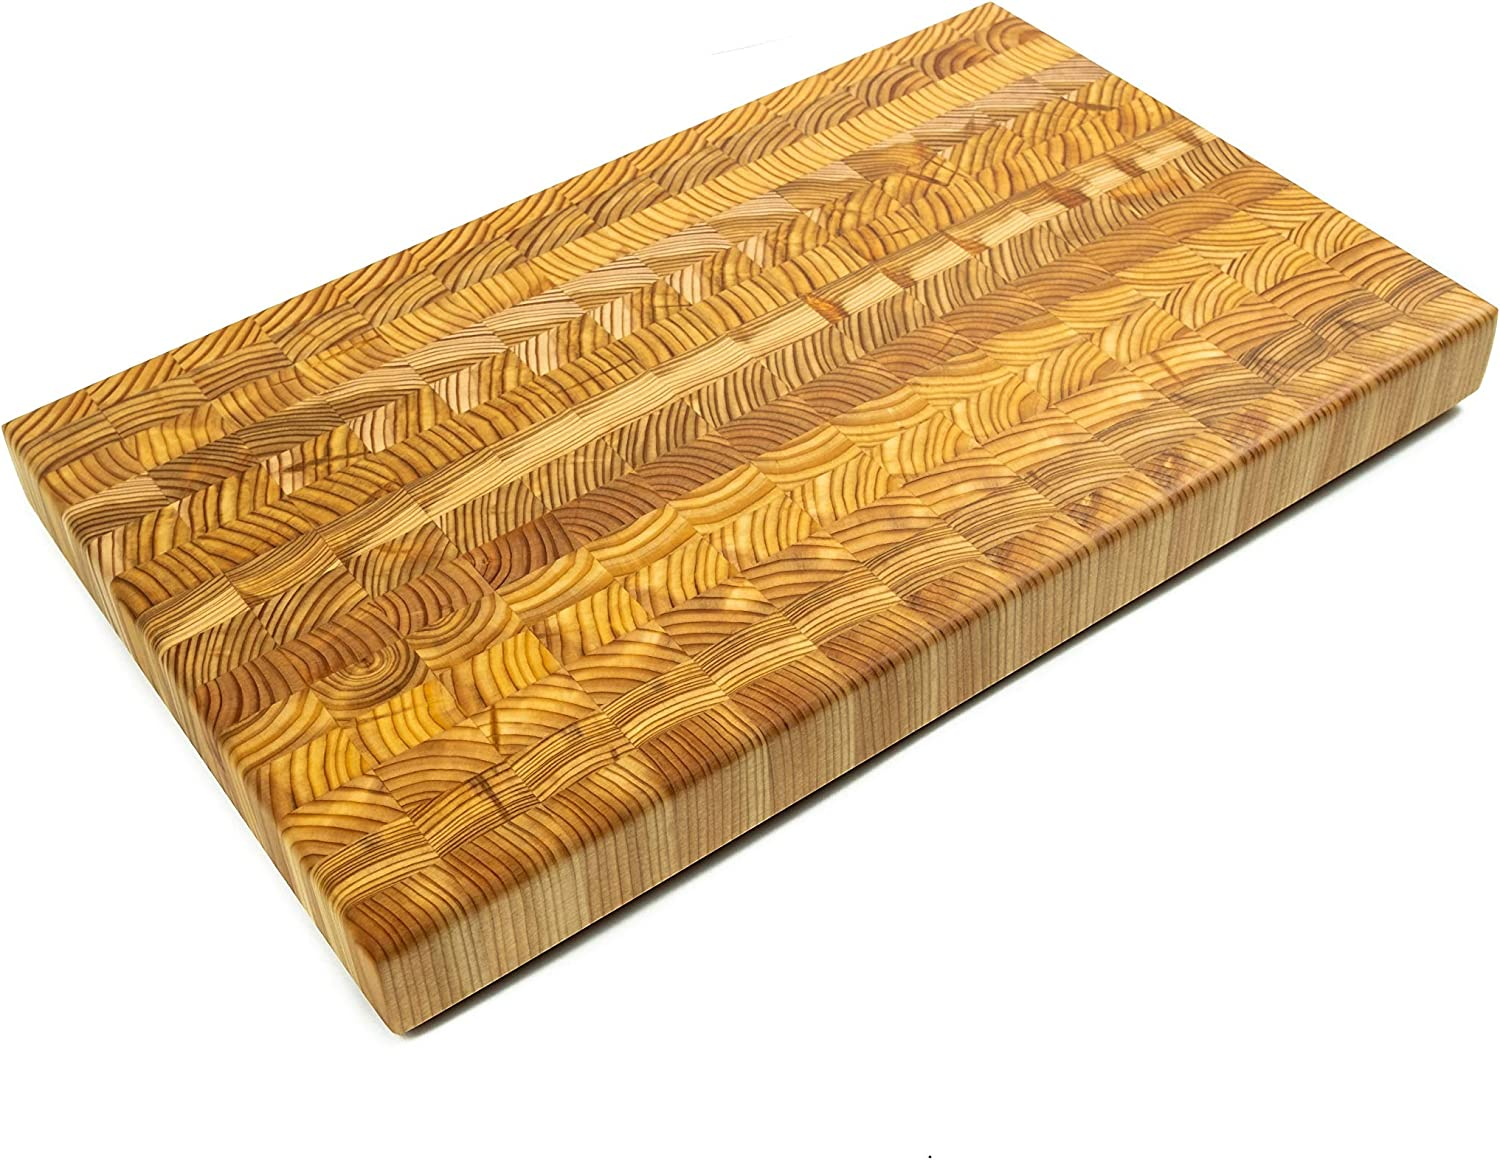 Larch Wood Canada End Grain Small Cutting Board, Handcrafted for Professional Chefs & Home Cooking, 17-3/4